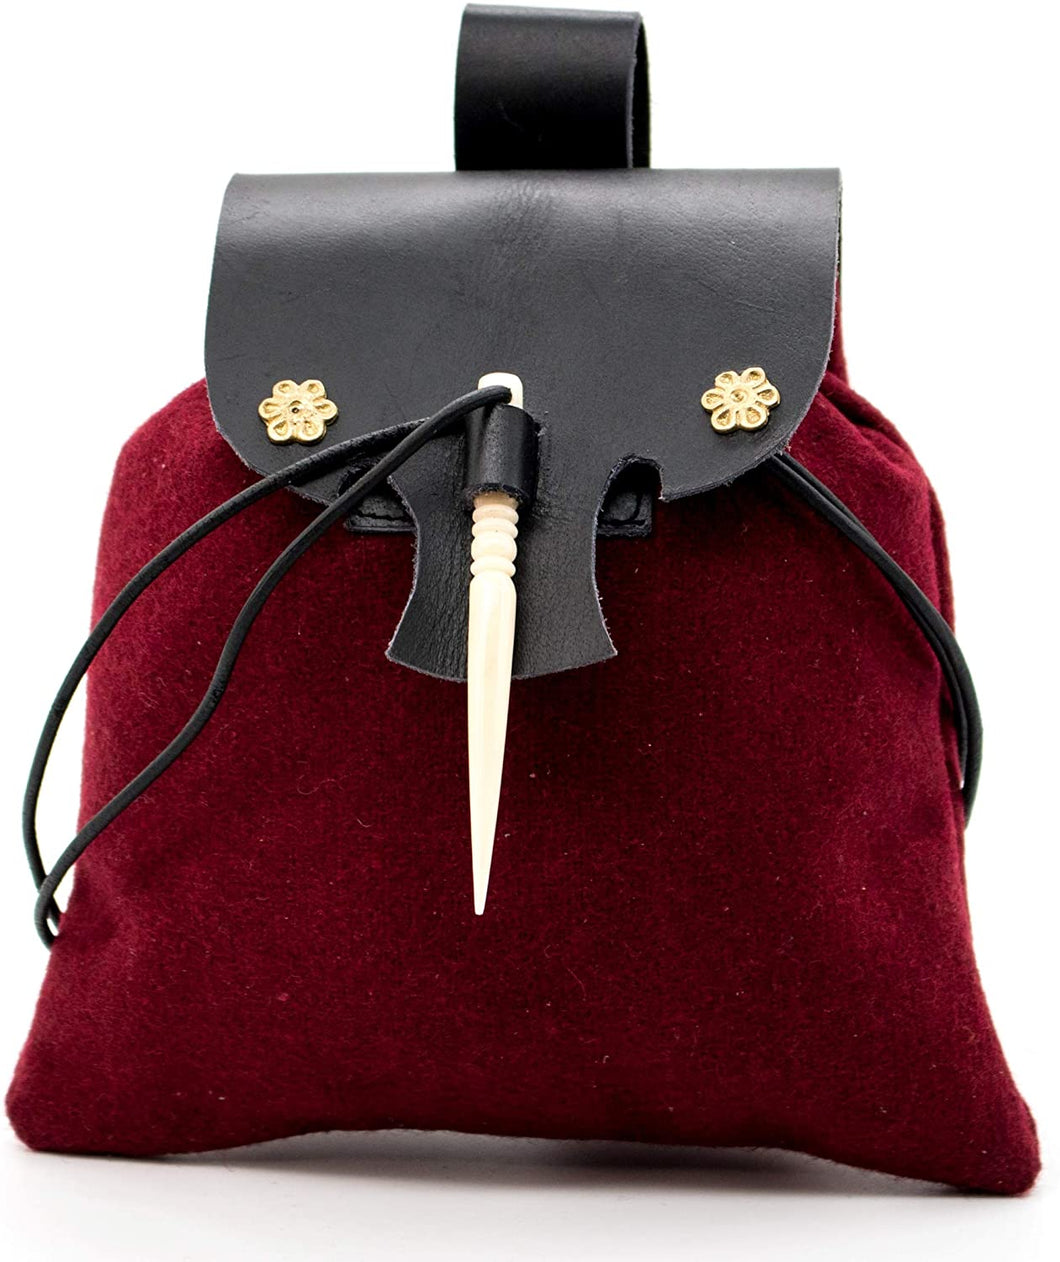 Mythrojan Medieval Small Leather Belt Pouch LARP Renaissance Waist Bag- Maroon & Black